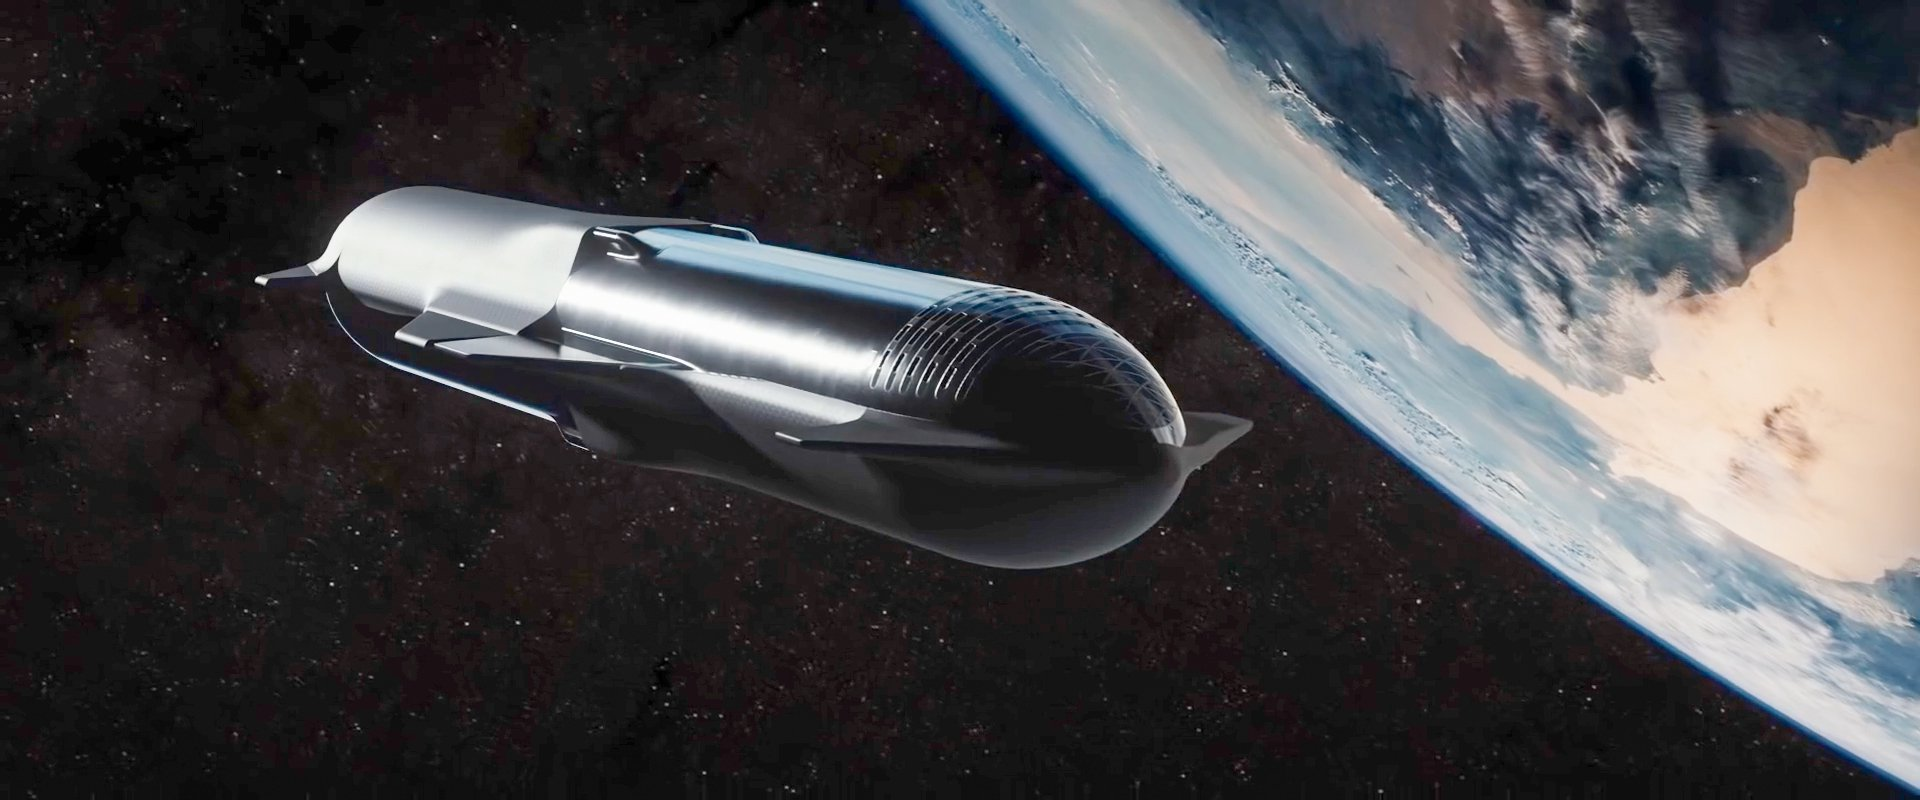 SpaceX developed new machines to speed up the construction of Starship prototypes